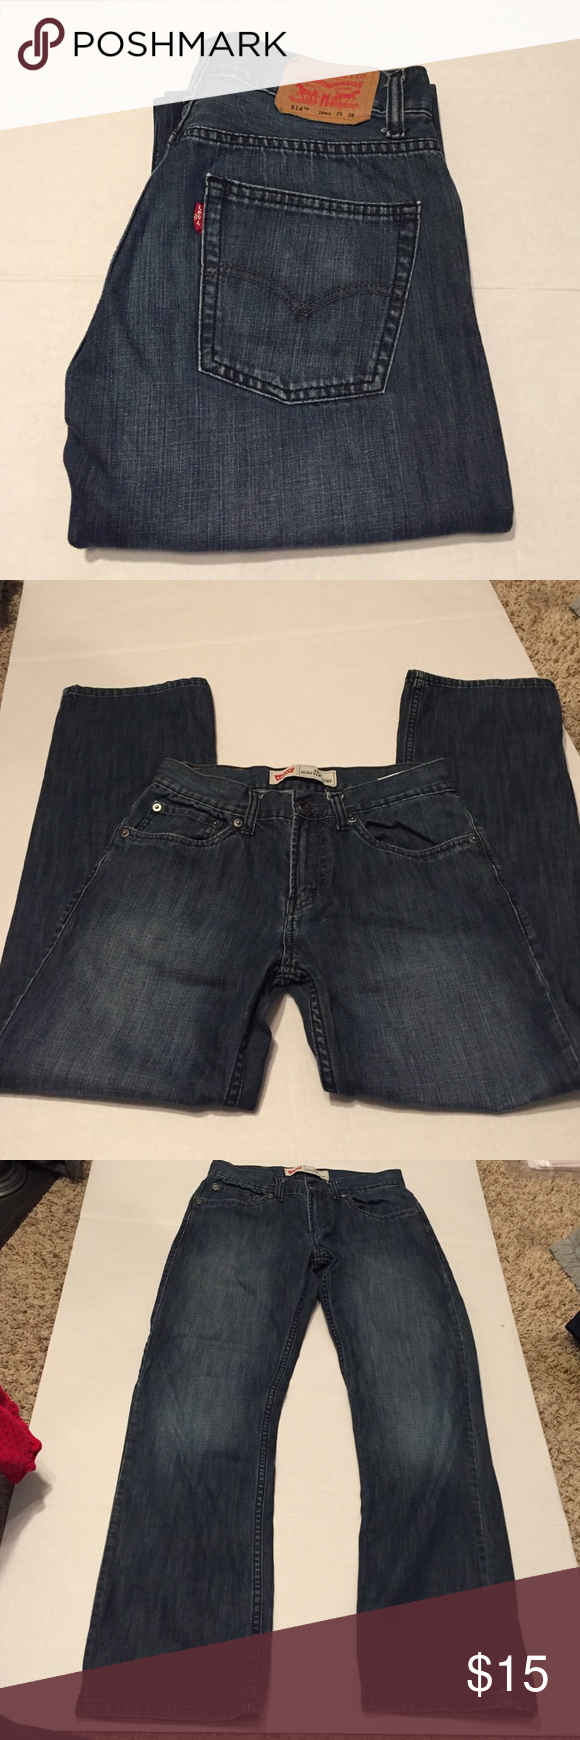 💙Levi's 514 Slim Straight size 16 Reg Levi's slim size 16 Reg.  Does not have adjustable waist.  🌻prices are negotiable - please feel free to make me an offer!  I also give great discounts when you make offers on bundled purchases!! 🌟 Levi's Bottoms Jeans